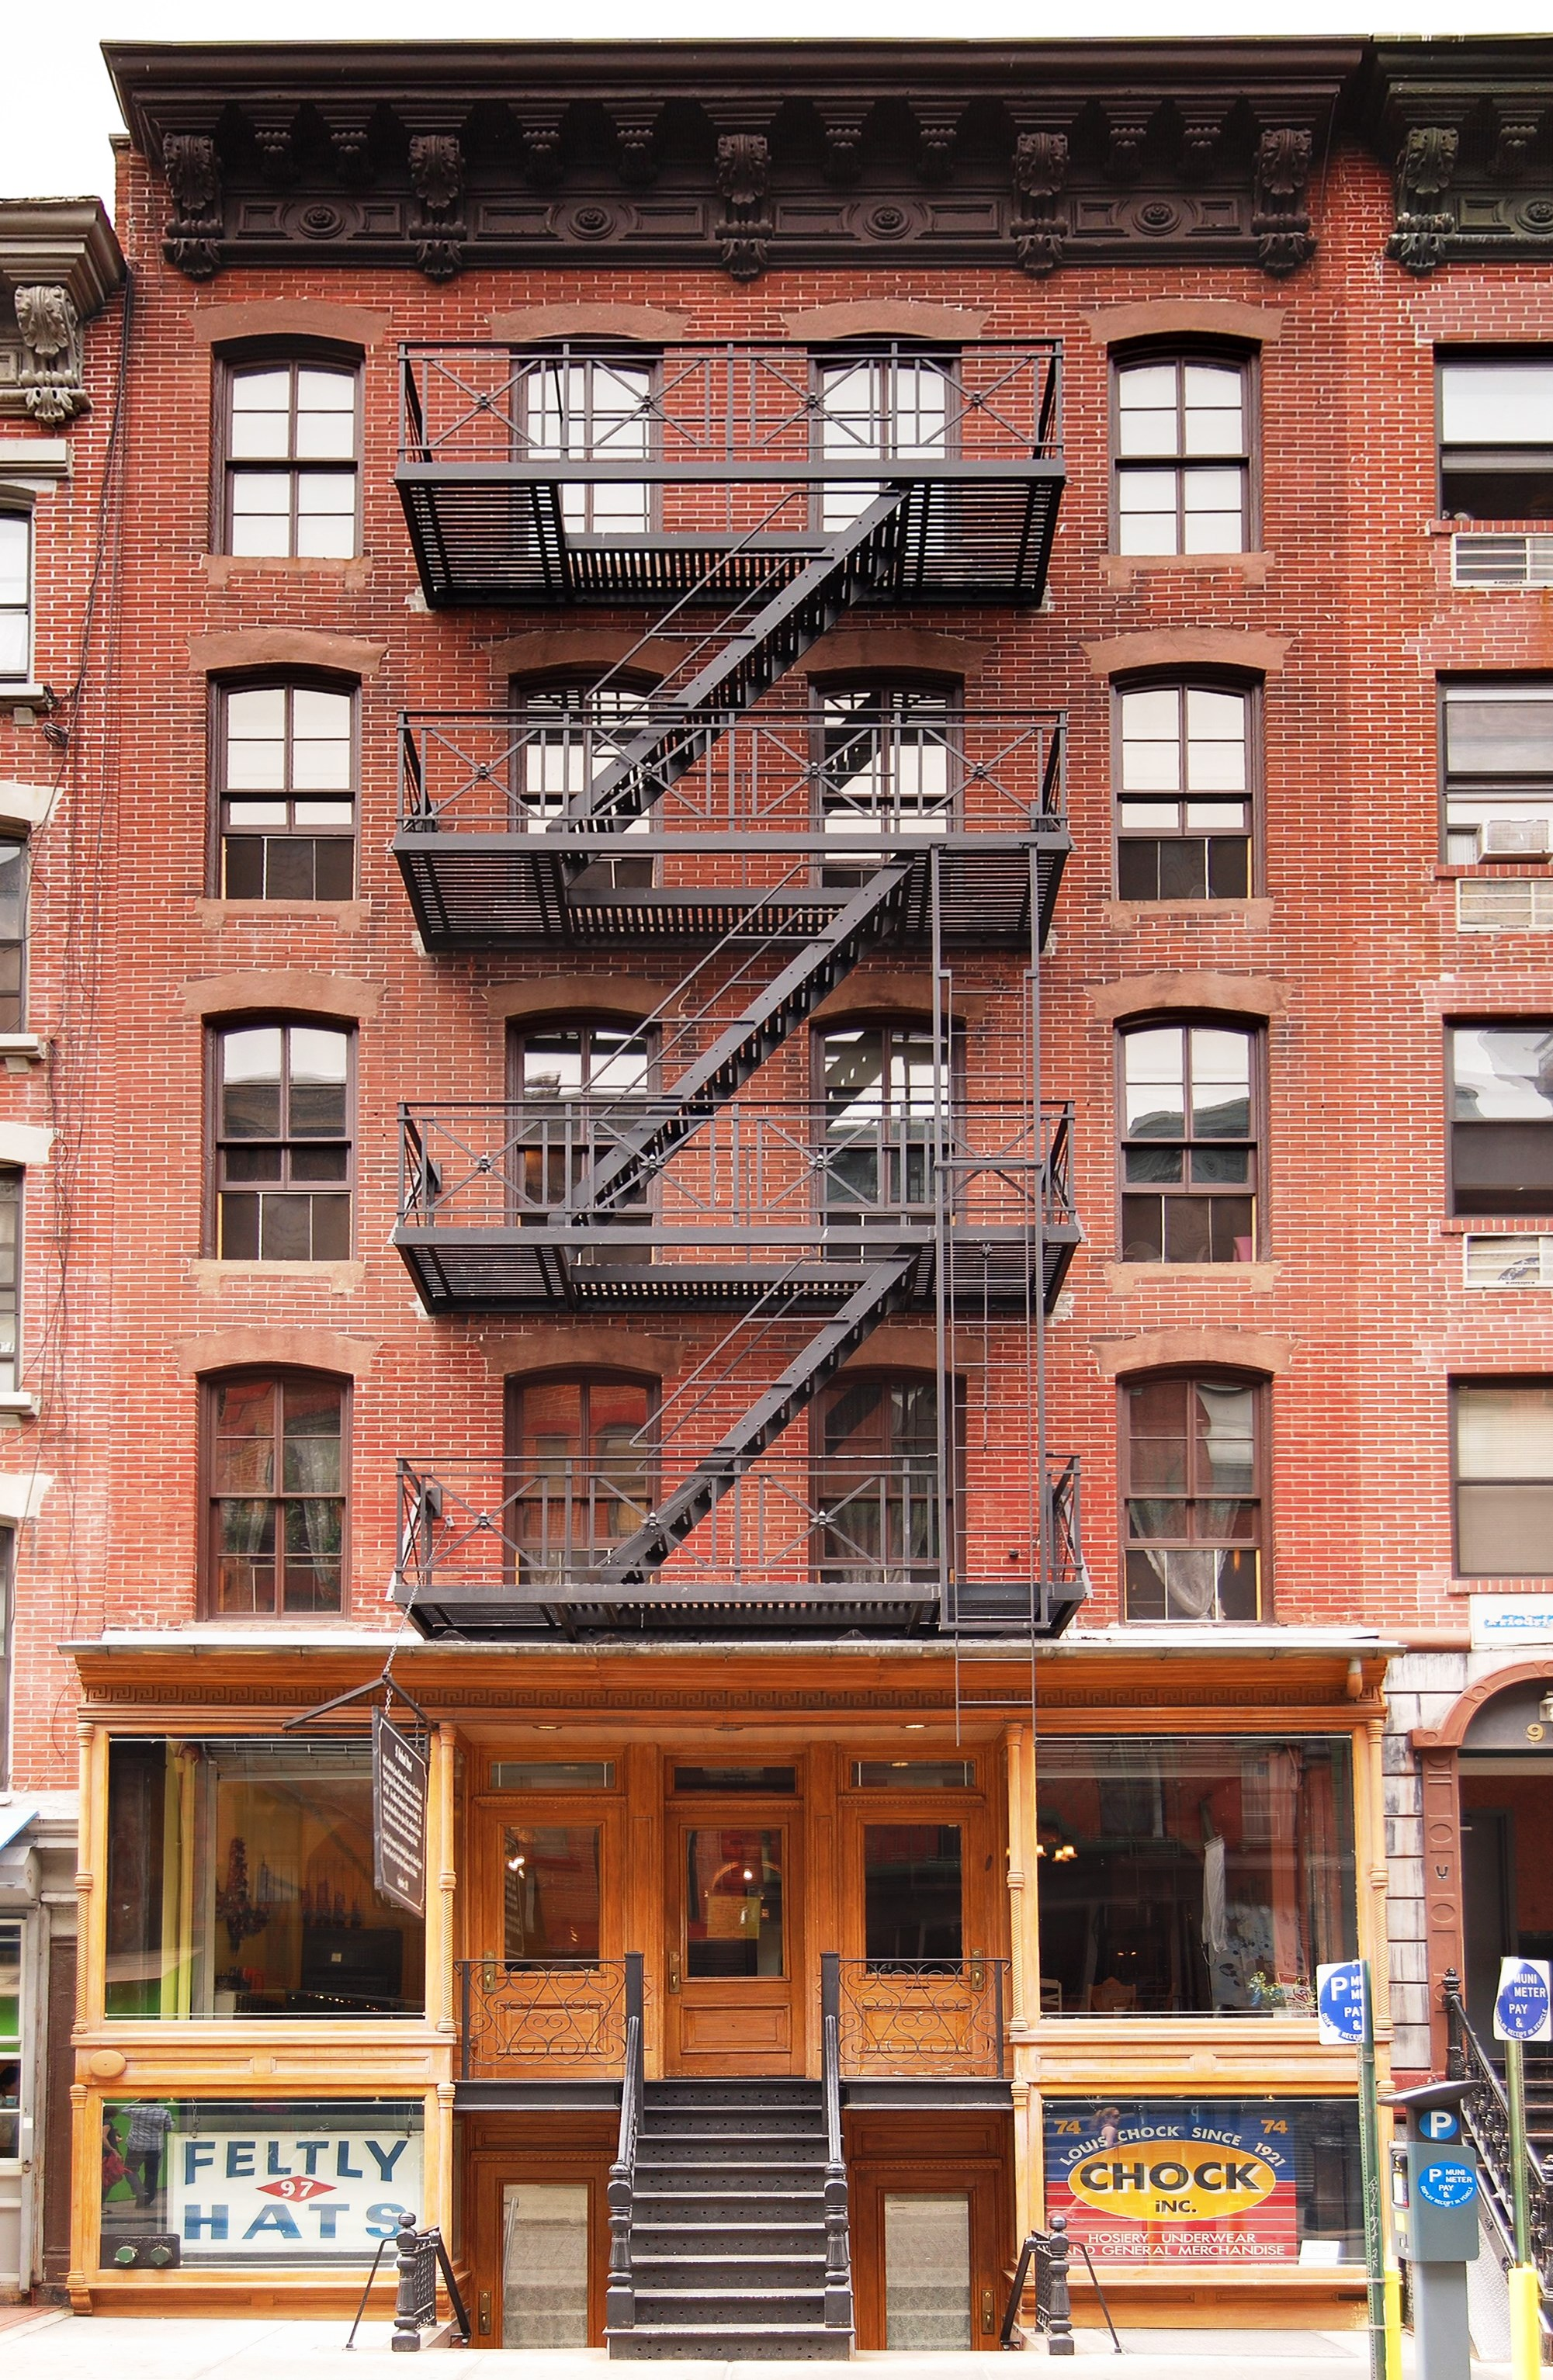 Lower East Side Tenement Museum at 97 Orchard Street, New York City (Fletcher6@wiki, CC BY 3.0)